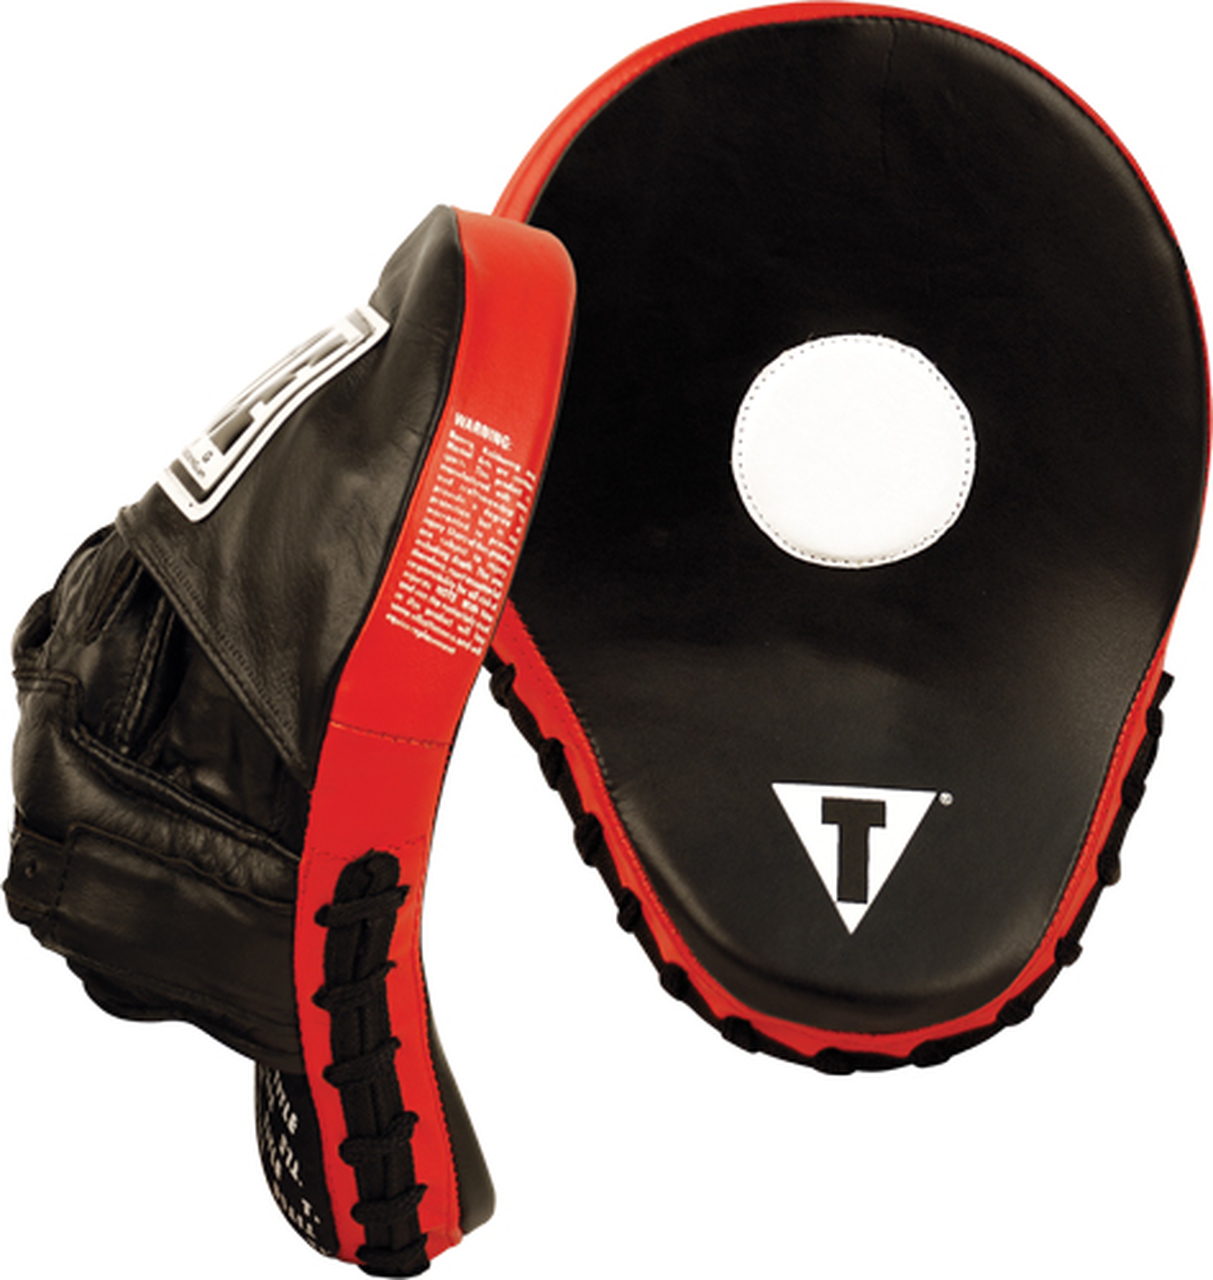 Boxing & MMA Coach and Trainer Supplies